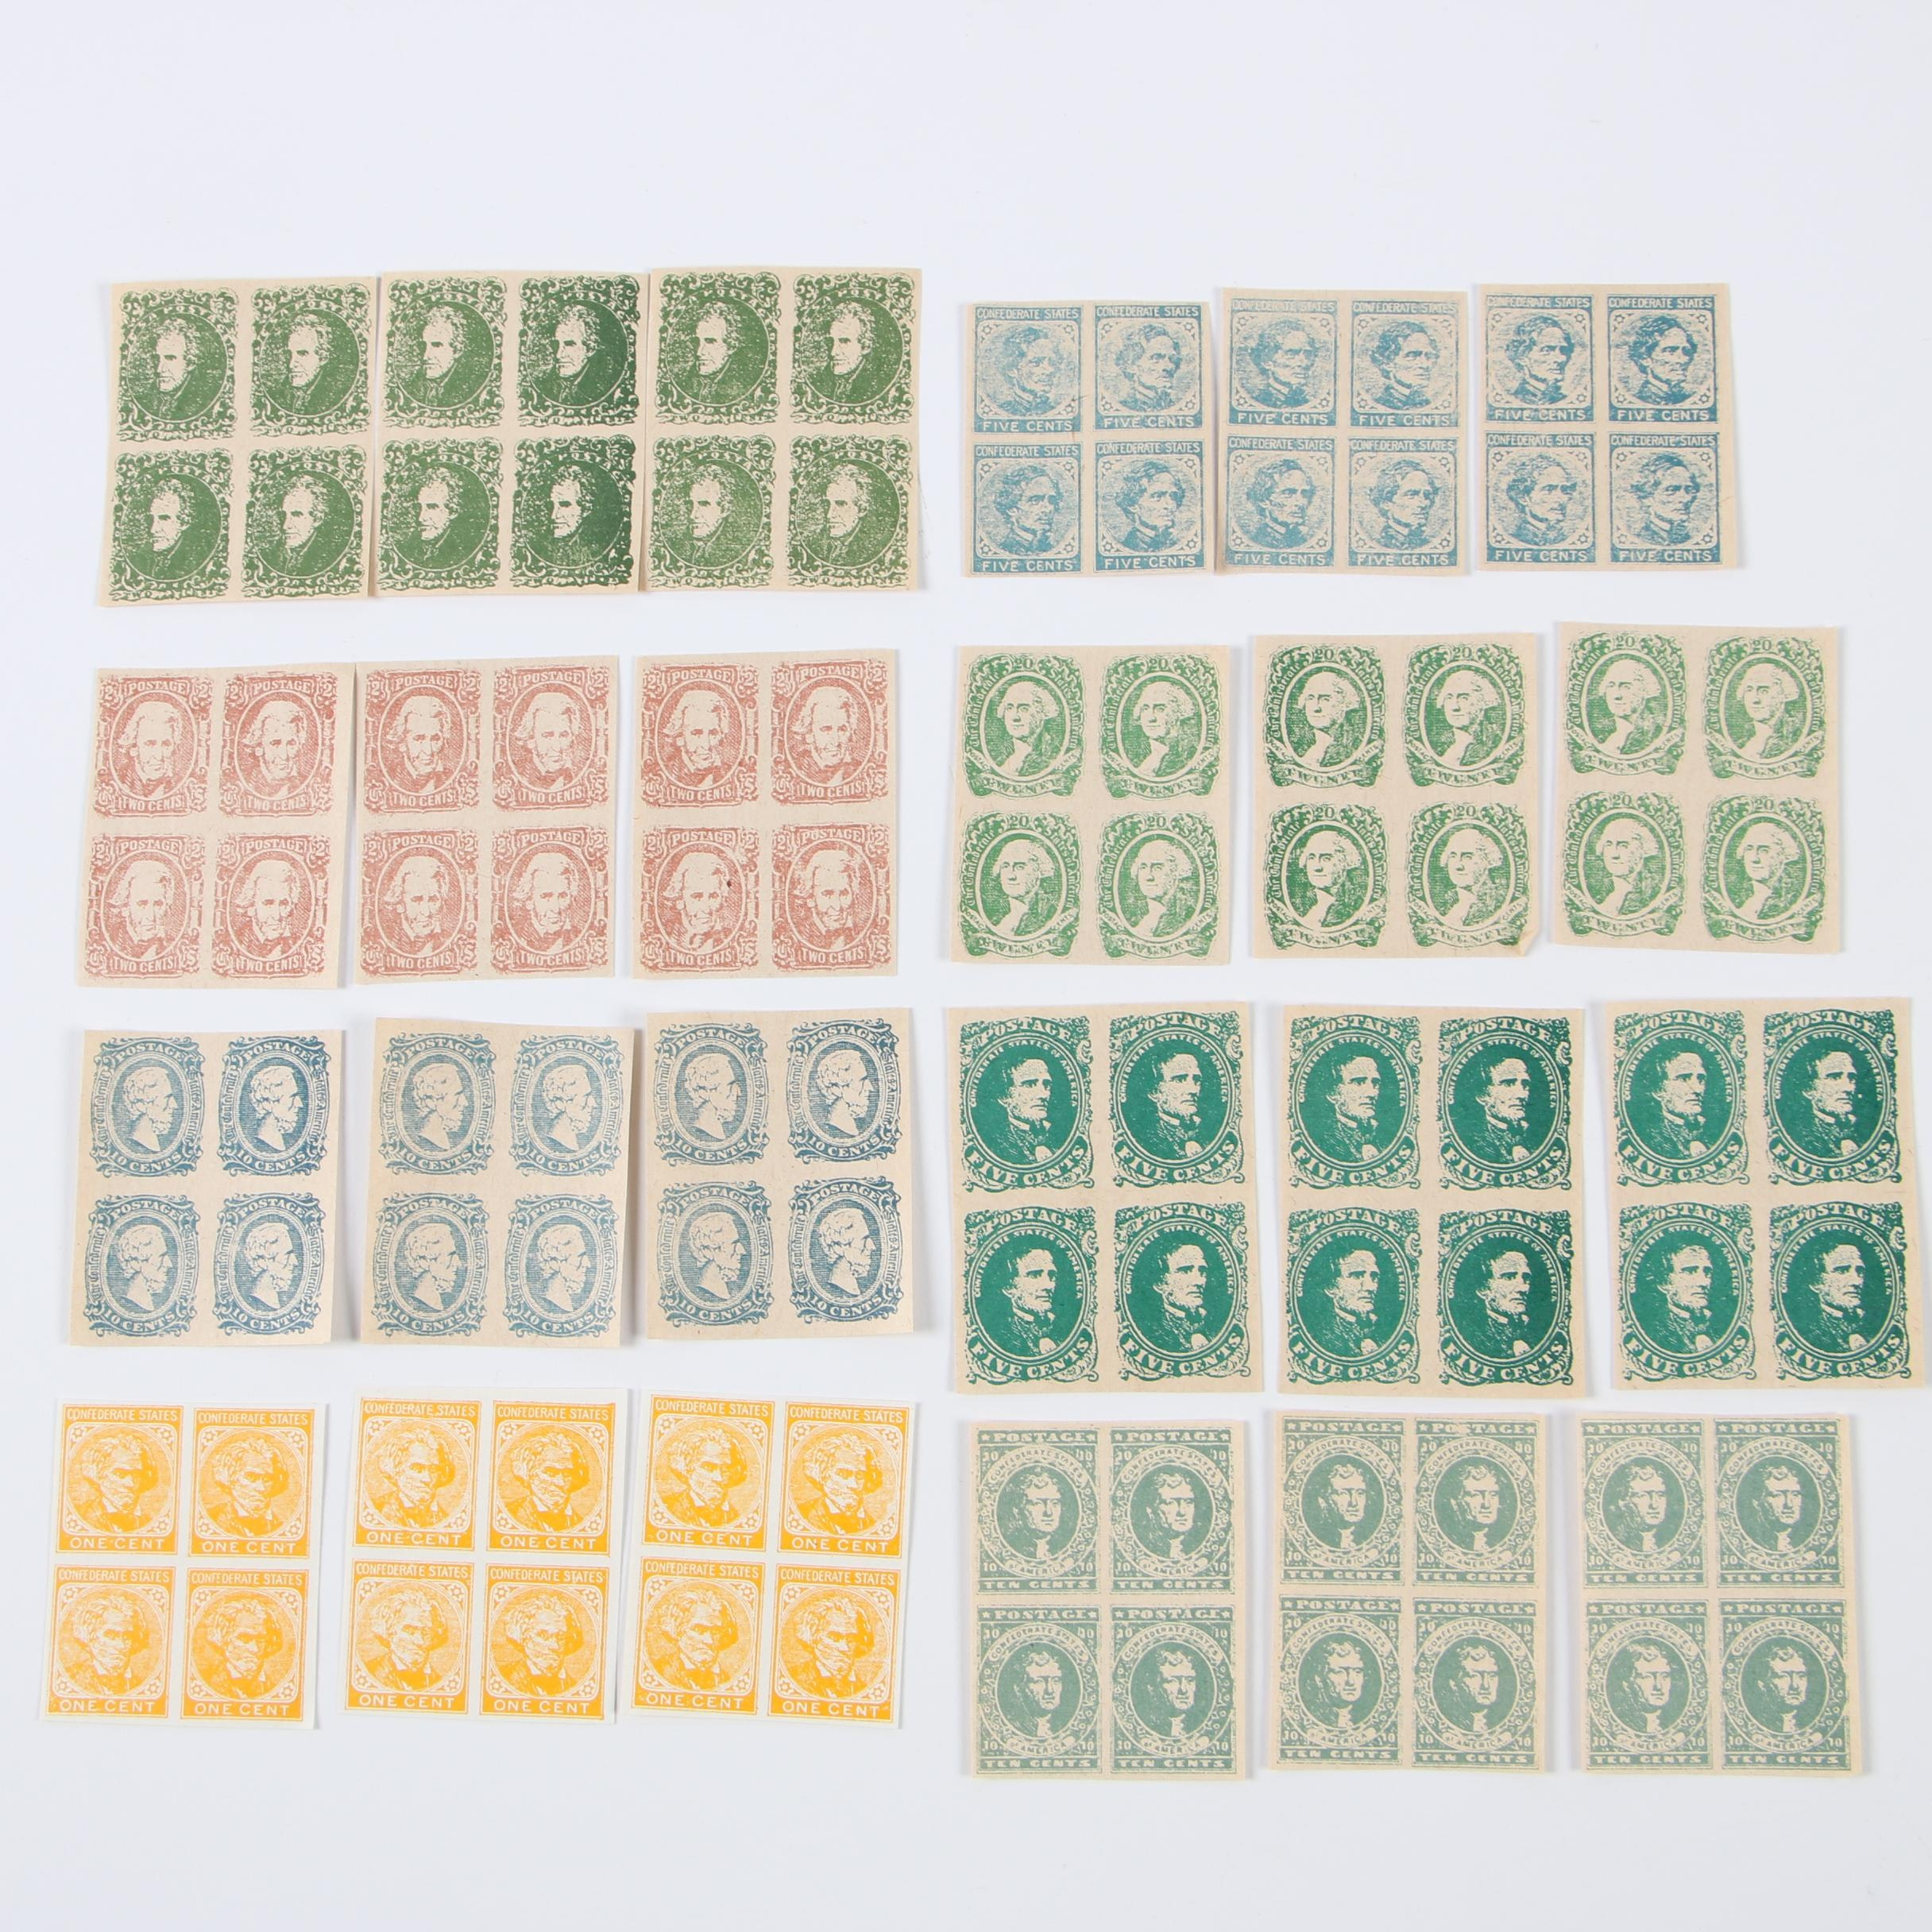 Facsimile Confederate States of America Postage Stamps, Early 20th Century